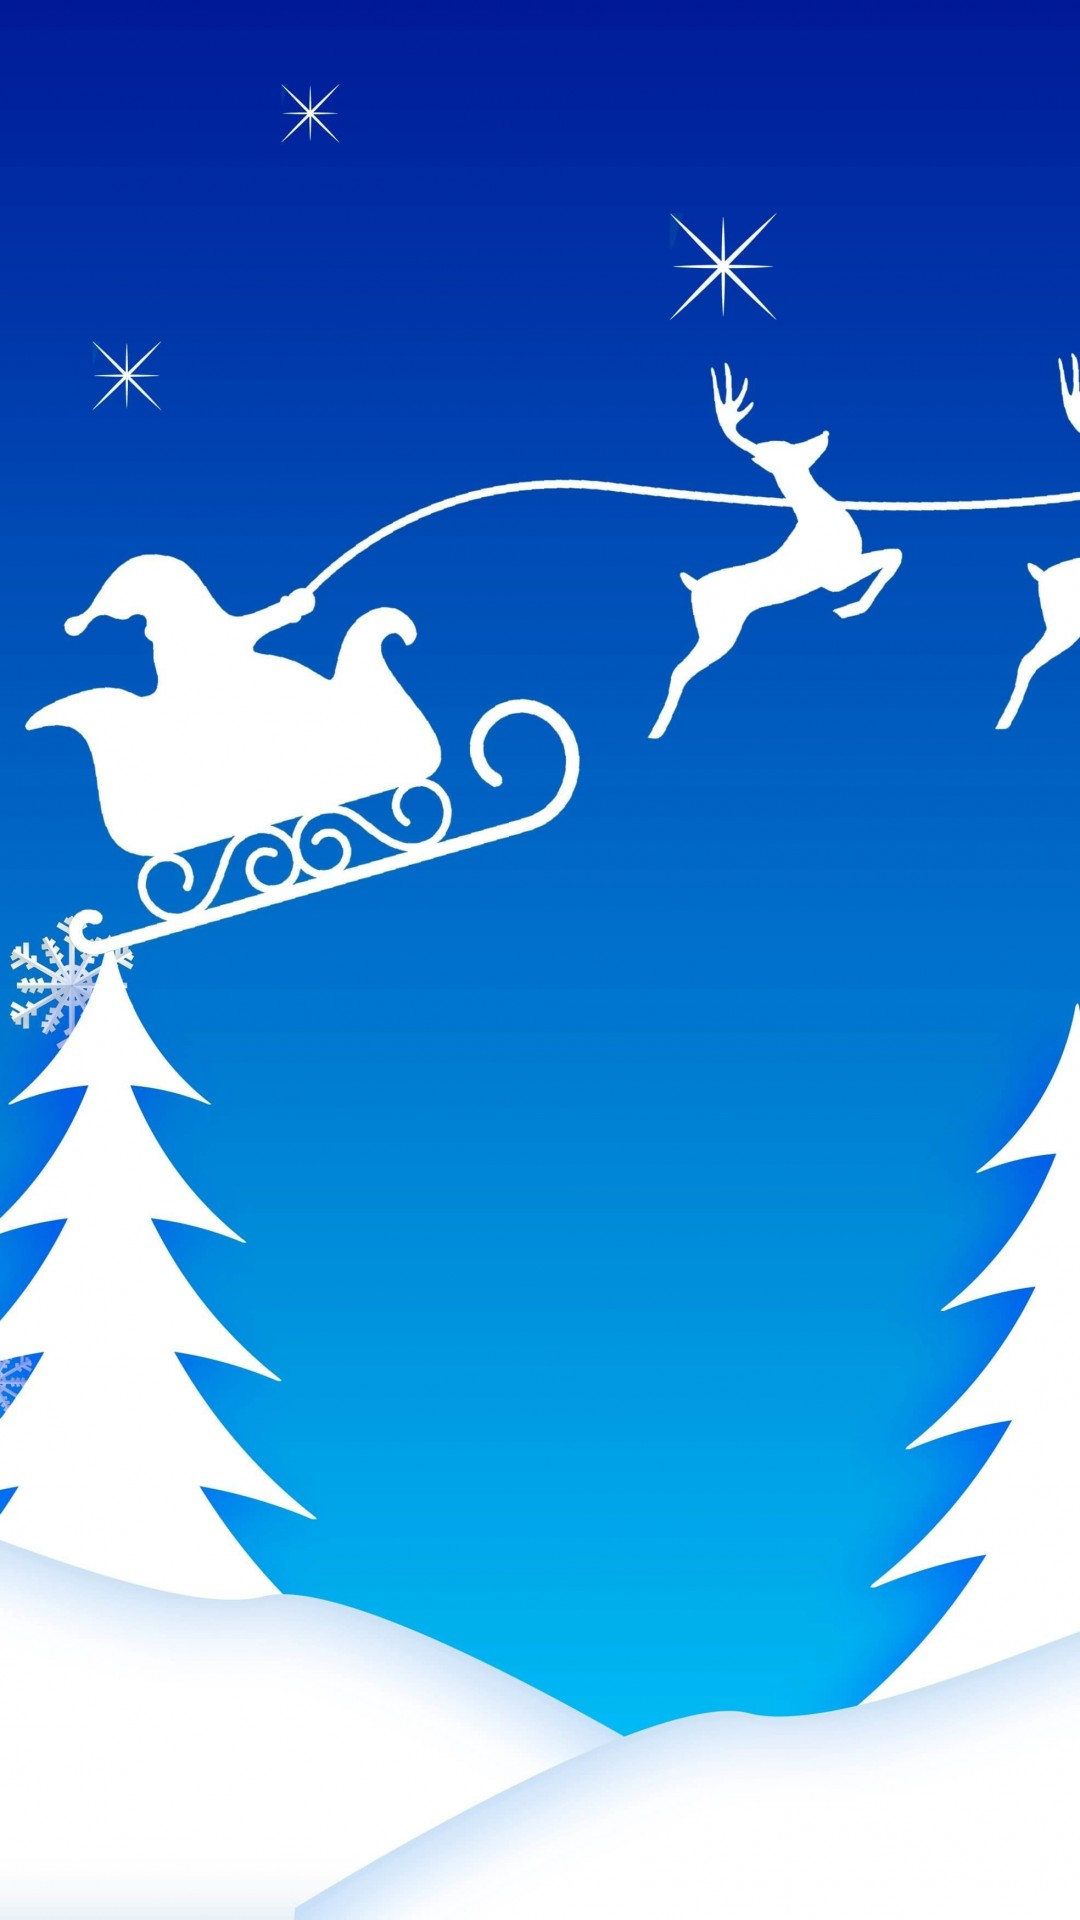 Santa's Sleigh Illustration Wallpaper for SAMSUNG Galaxy Note 3